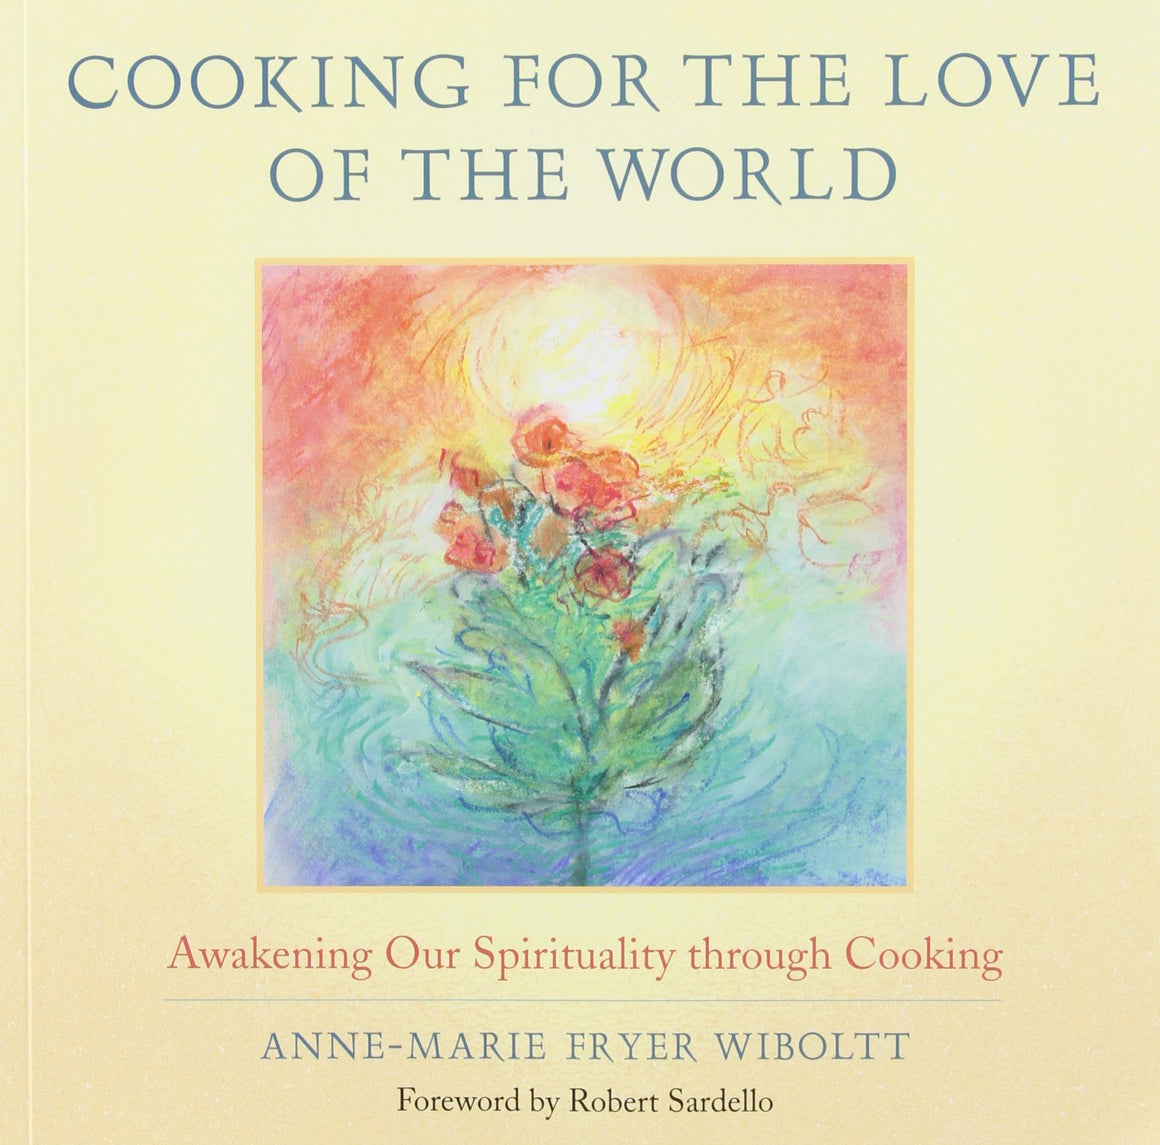 Cooking for the Love of the World: Awakening Our Spirituality through Cooking by Anne-Marie Fryer Wiboltt, Introduction by Robert Sardello